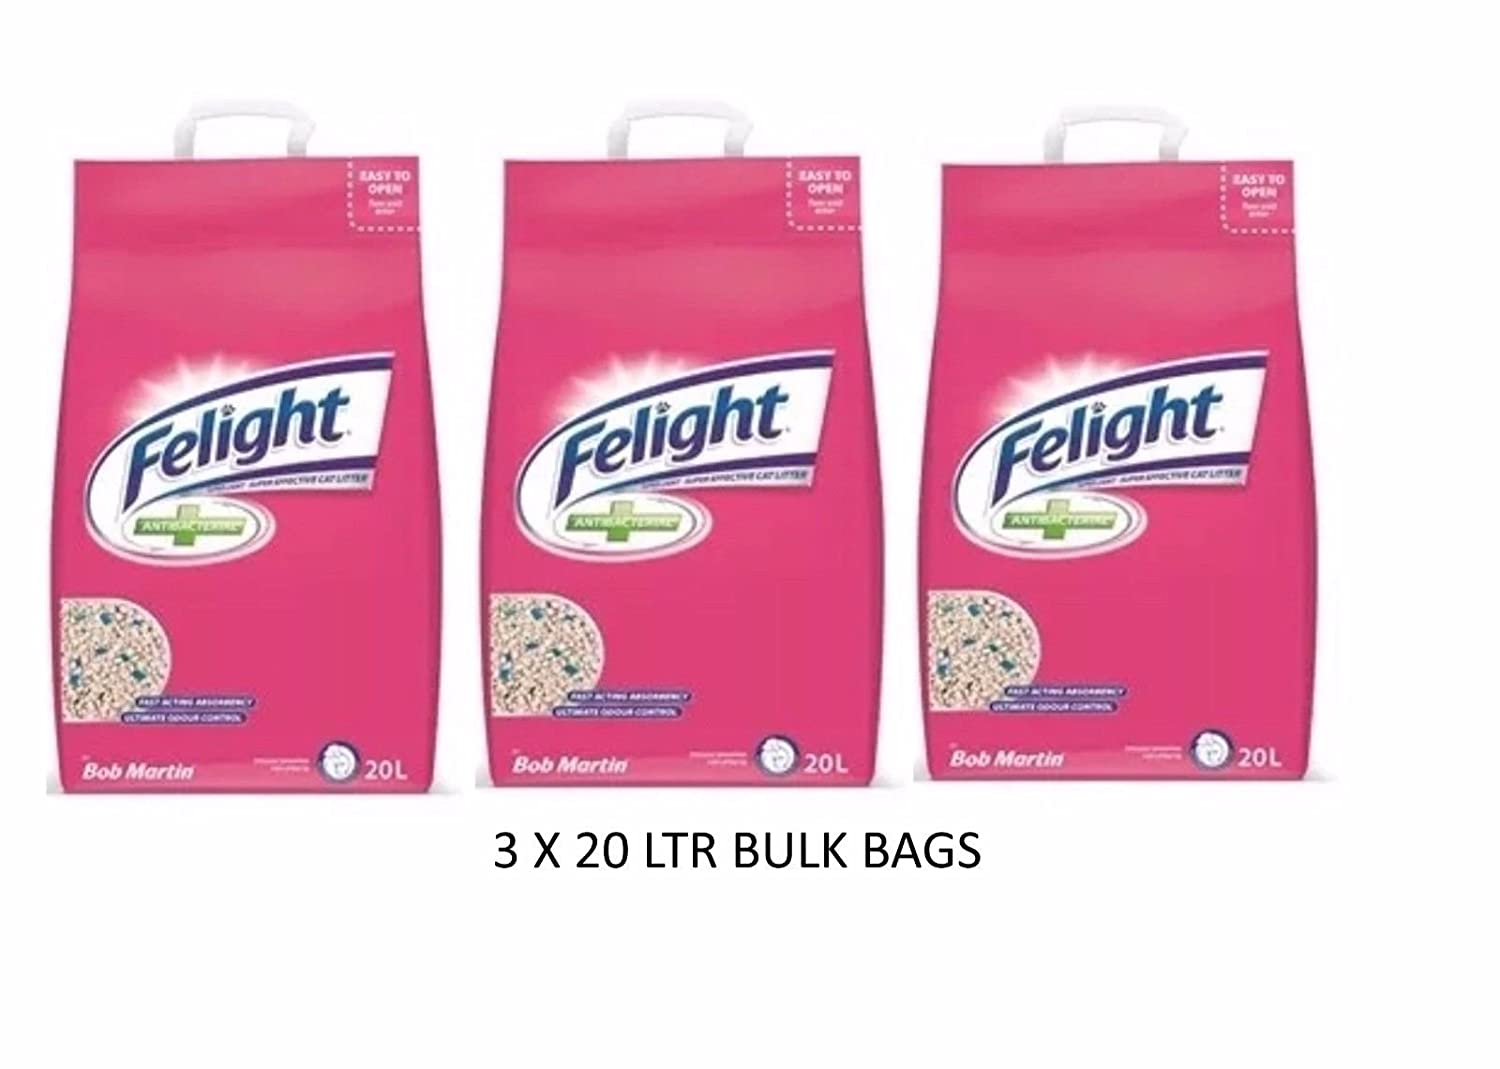 *NEW* 3 X 20 LTR BAGS BOB MARTIN FELIGHT LIGHTWEIGHT CAT LITTER STAYFRESH ODOUR CONTROL VALUE PACK WUNDAPETS